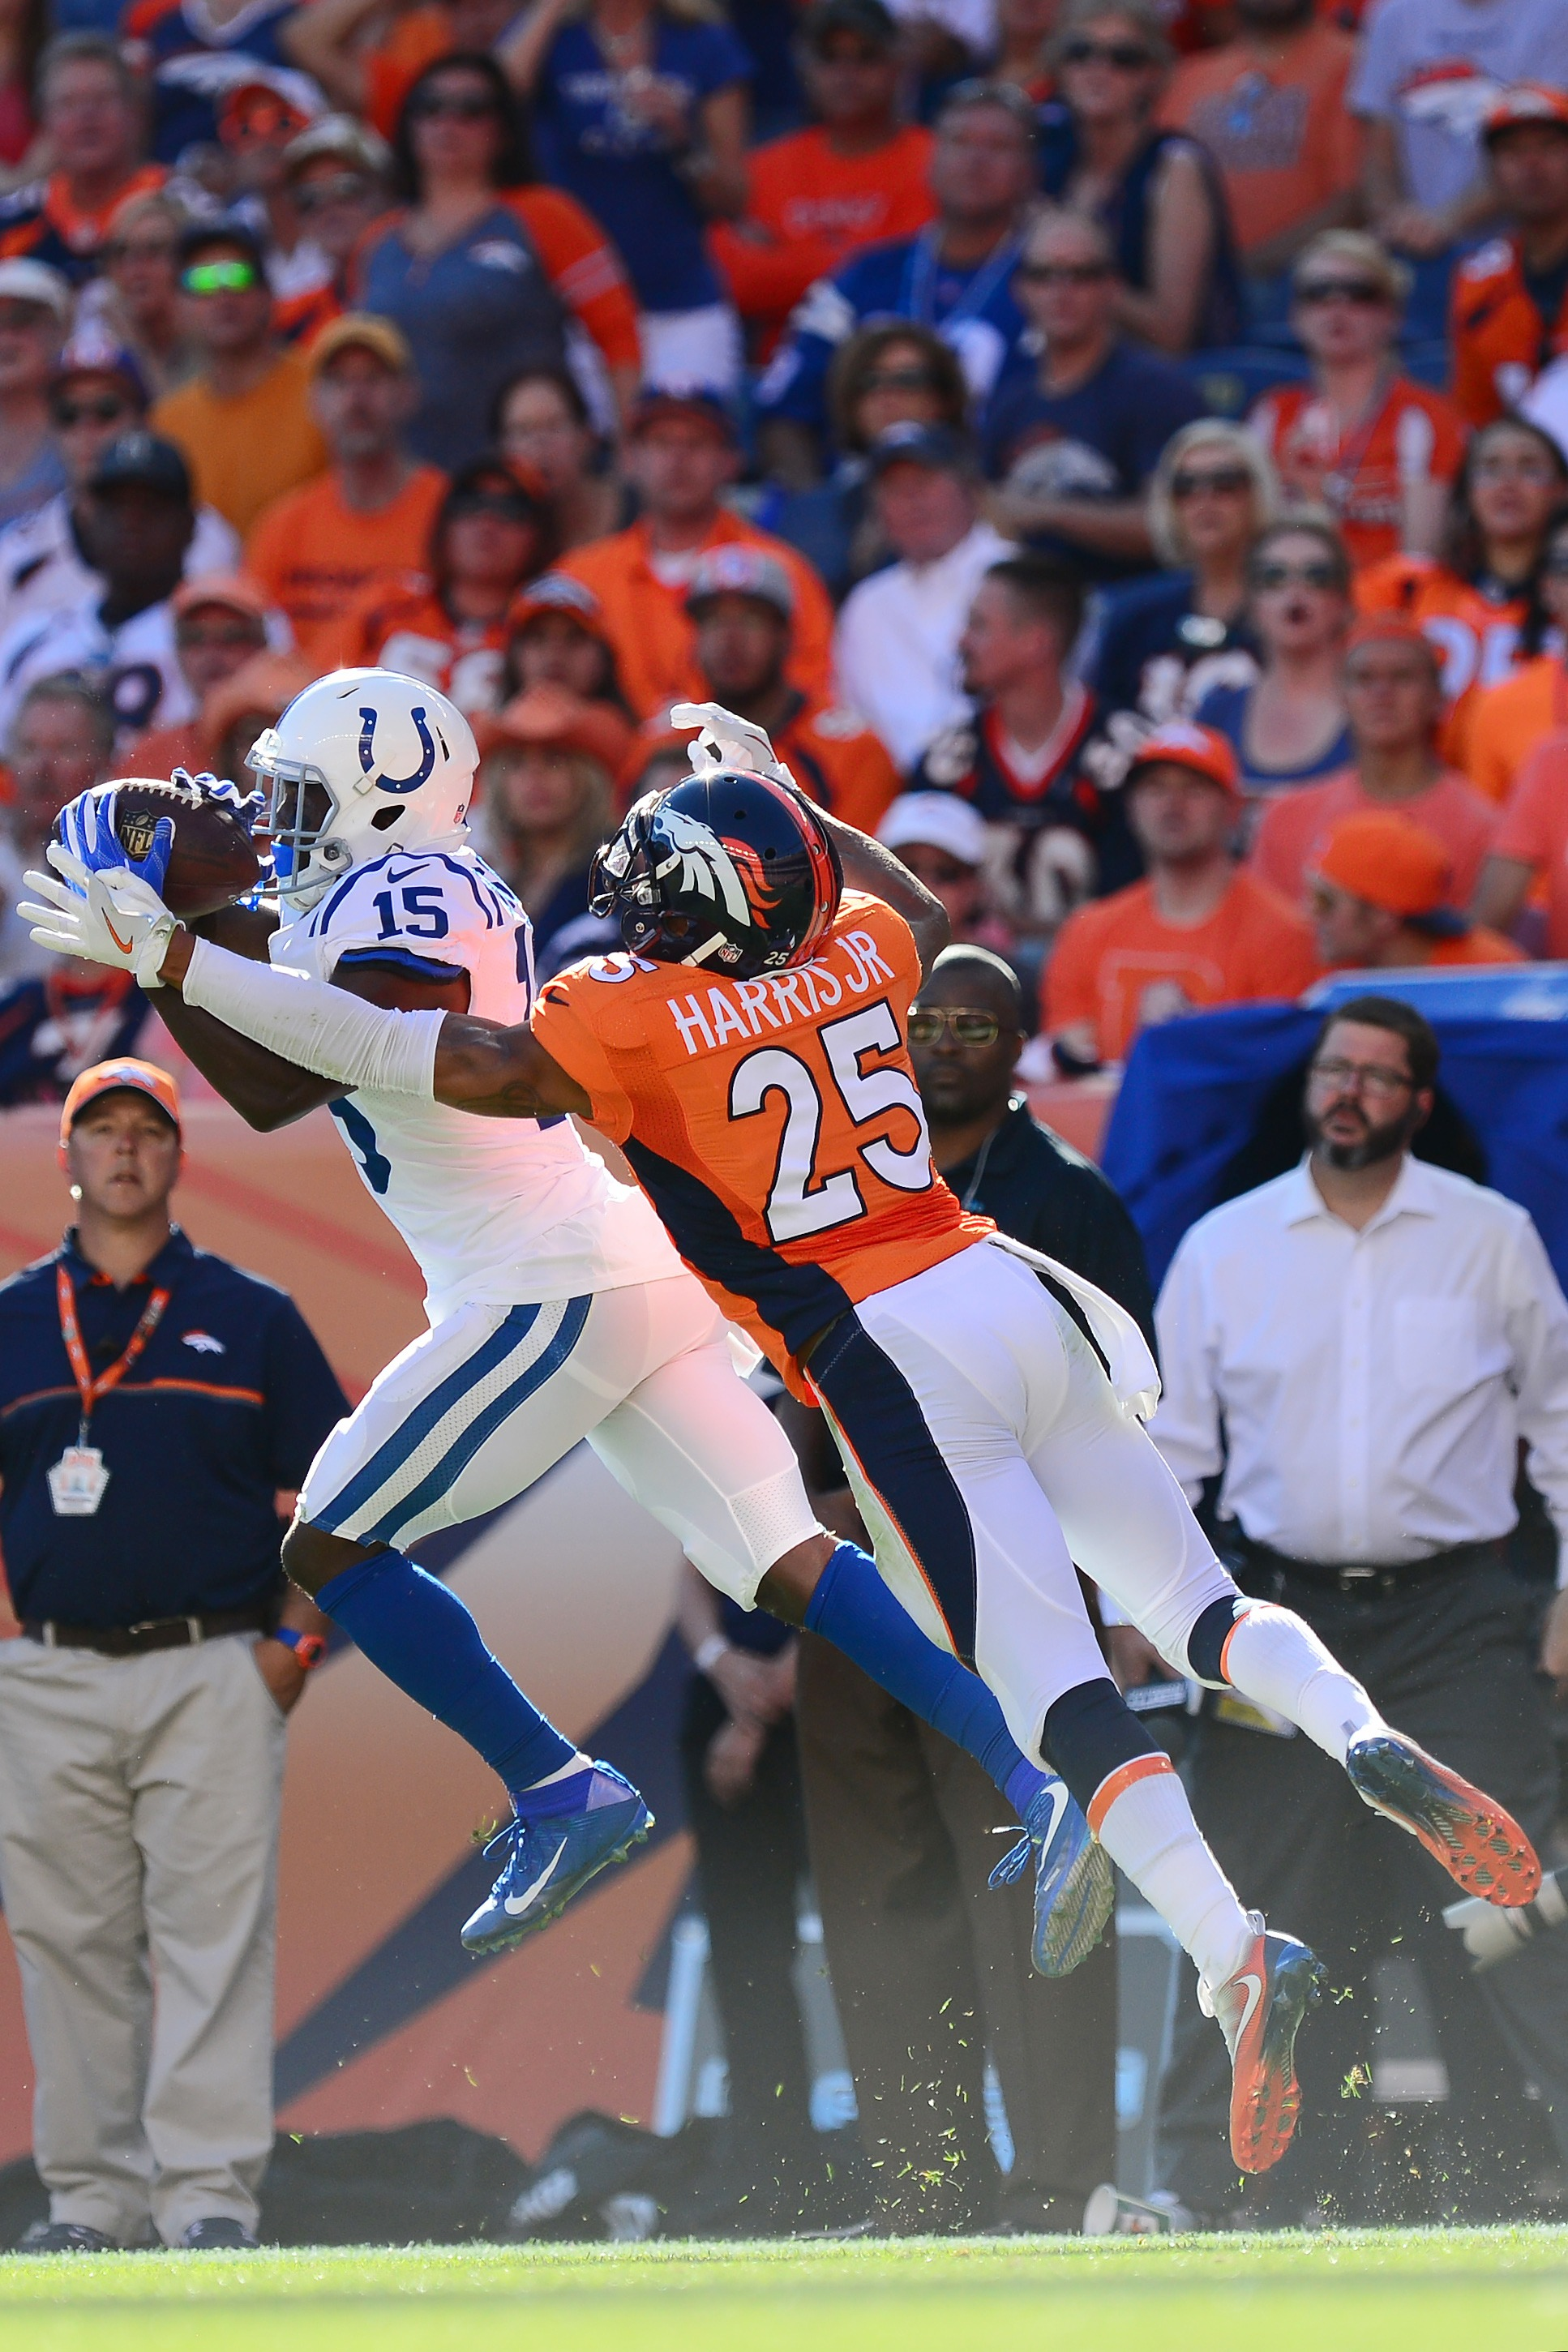 Wide receiver Phillip Dorsett #15 of the Indianapolis Colts catches a 35-yard-completion in the third quarter of the game while defended by cornerback Chris Harris #25 of the Denver Broncos at Sports Authority Field at Mile High on September 18, 2016 in Denver, Colorado. (Photo by Dustin Bradford/Getty Images)